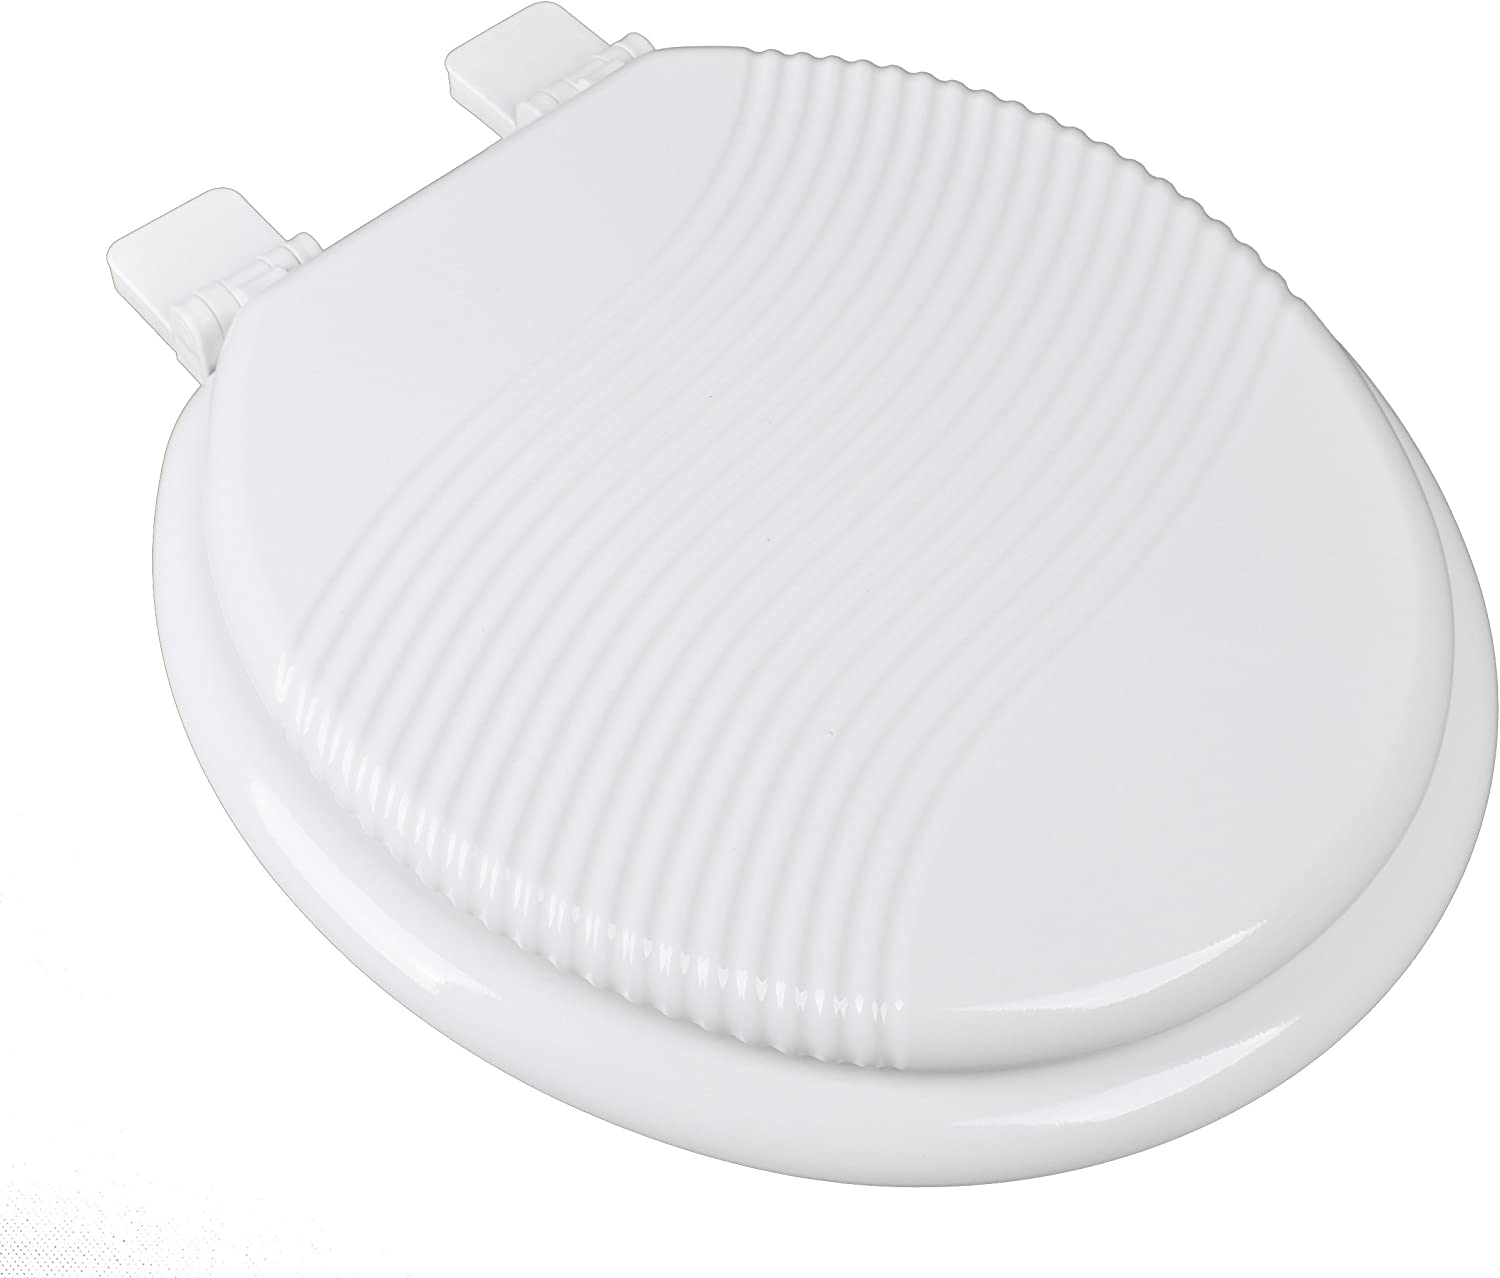 Bath Décor 1F1R8-00WF Sculpted Molded Round Wood Waterfall Toilet Seat, White